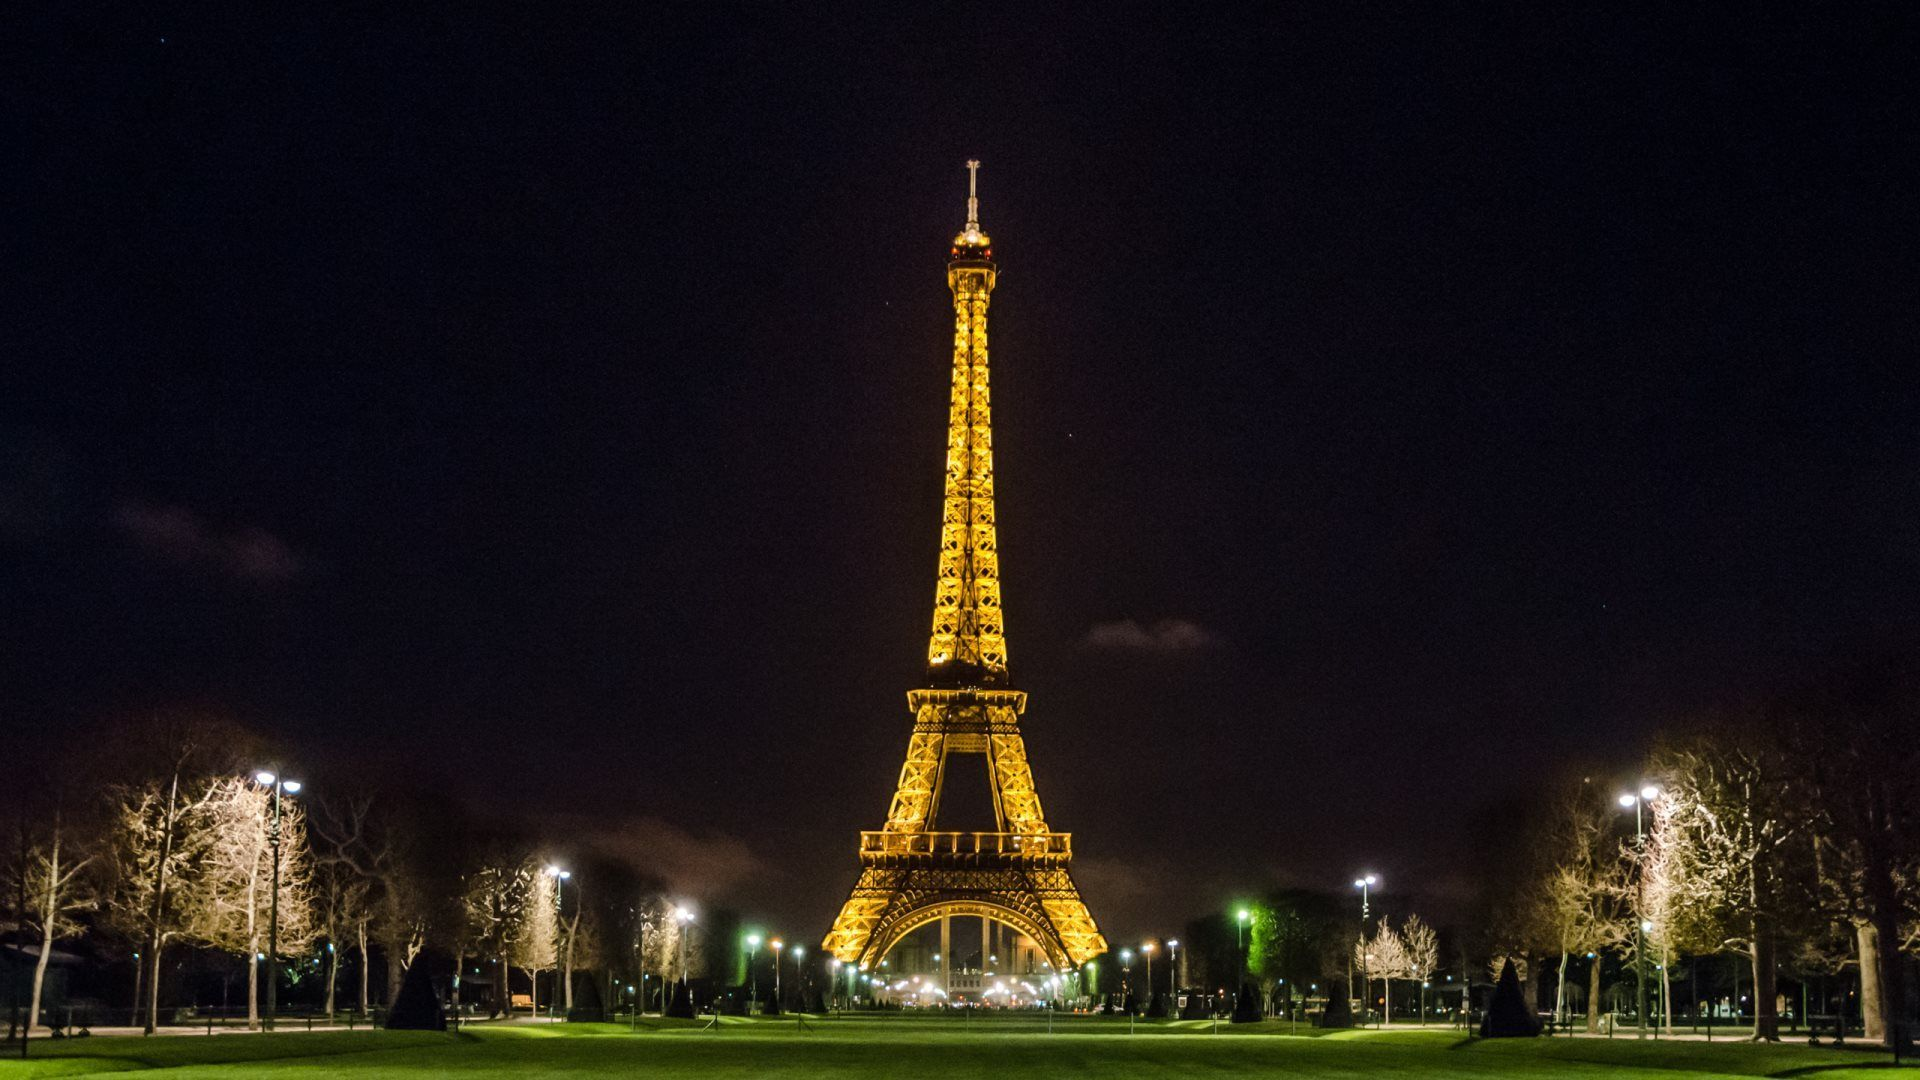 Eiffel Tower Cute Wallpapers Phone Scerbos Eiffel Tower At Night